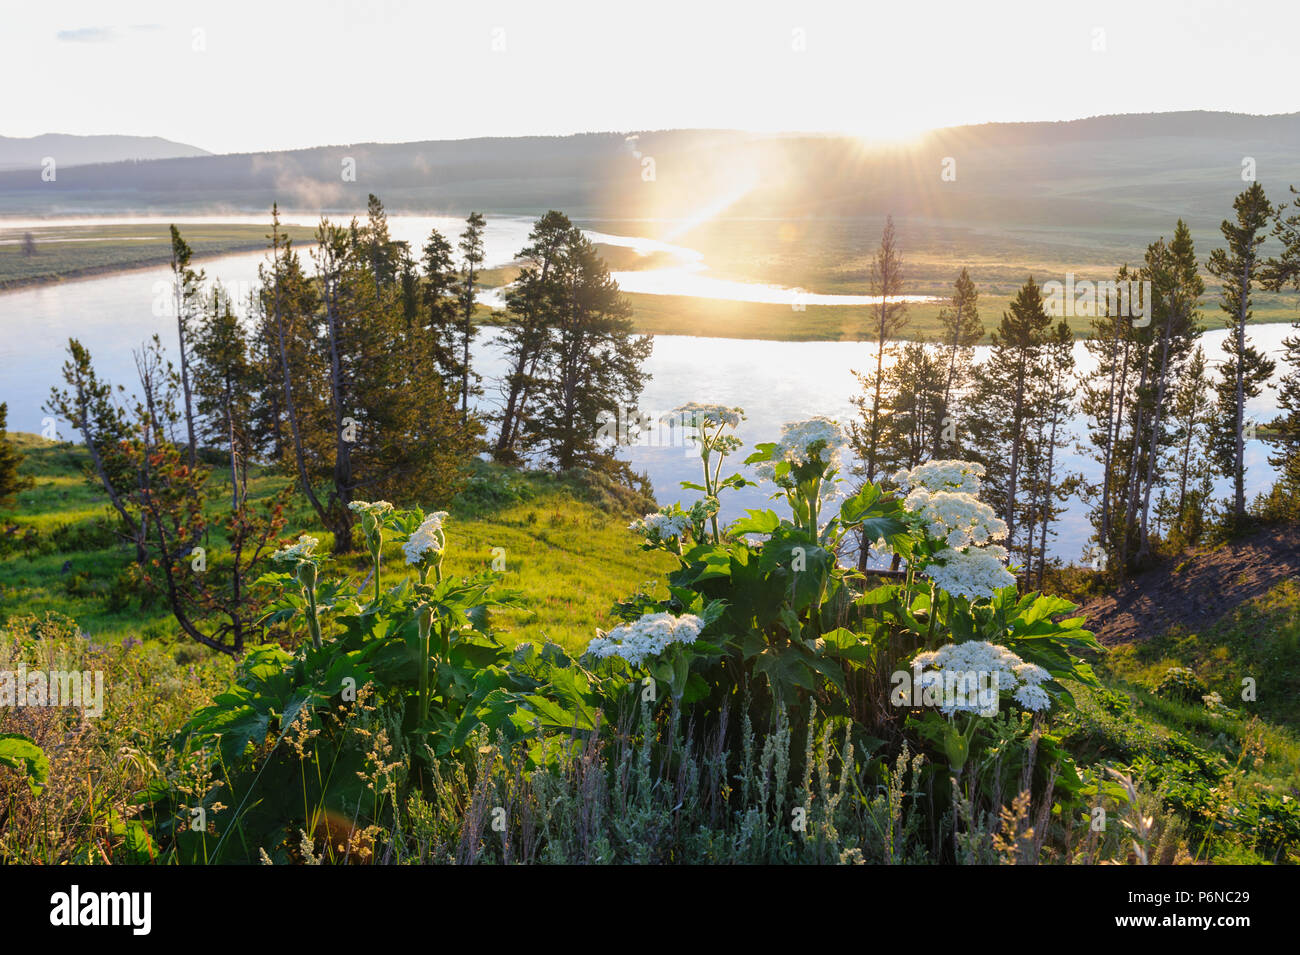 The yellowstone river meandering through Hayden Valley - Stock Image